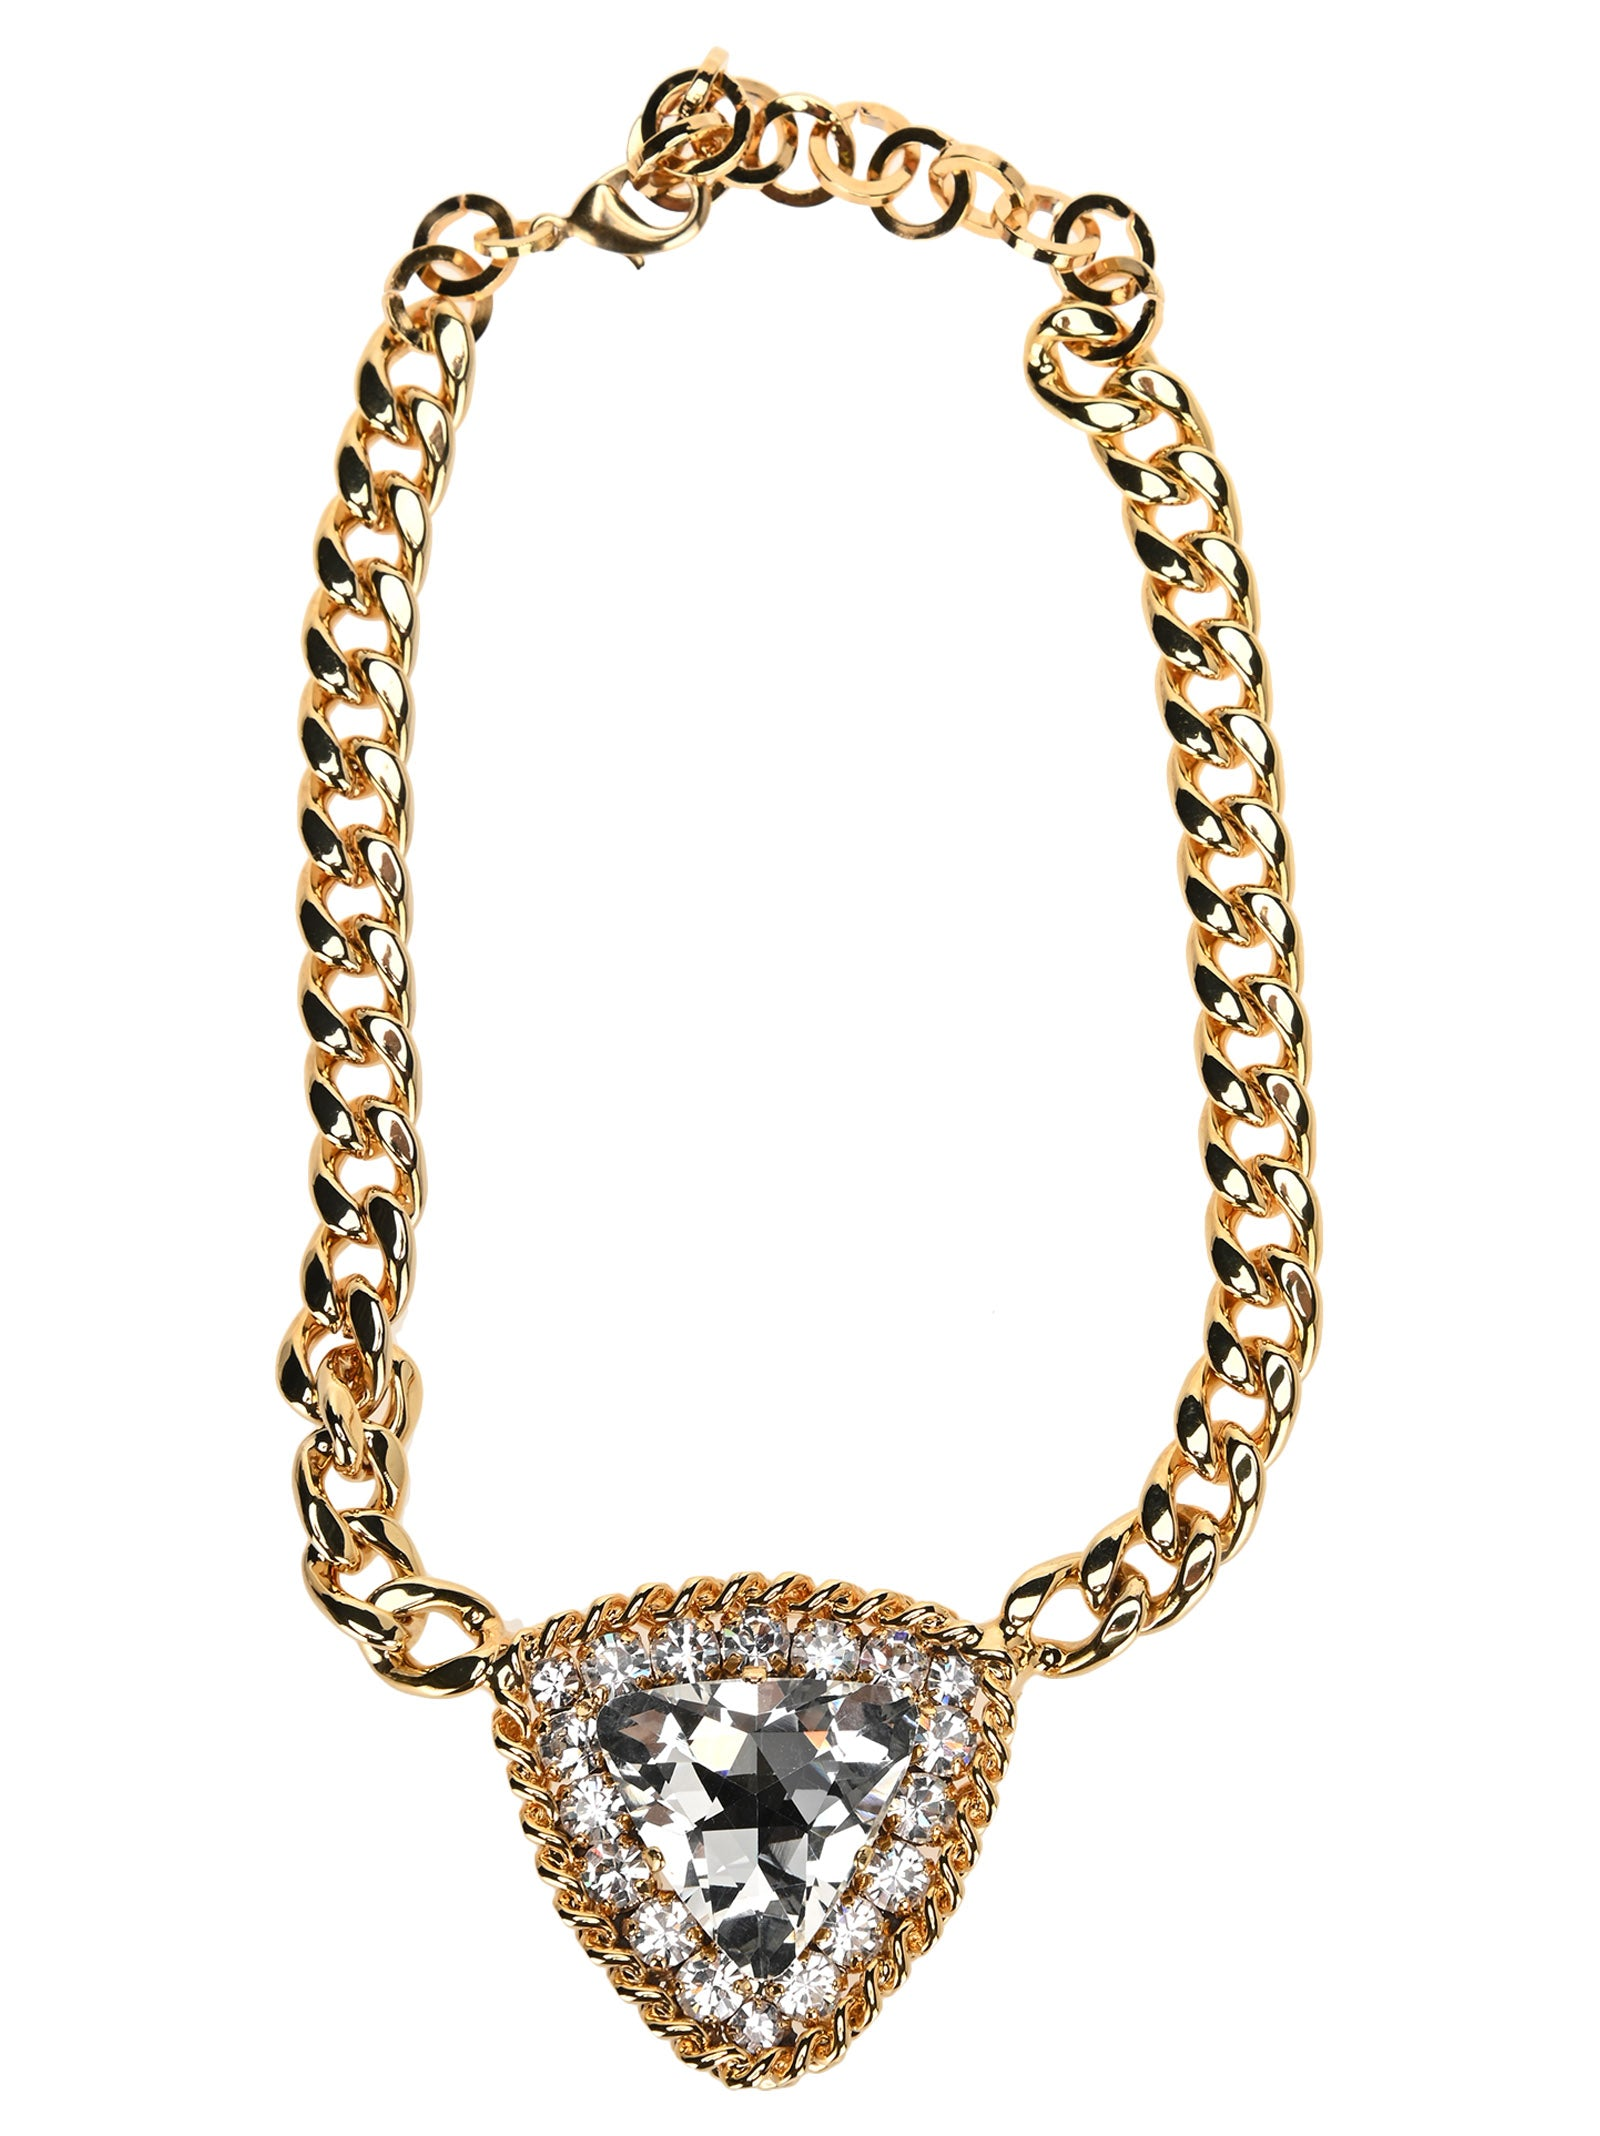 Alessandra Rich Necklaces ALESSANDRA RICH CRYSTAL PENDANT CHAIN NECKLACE